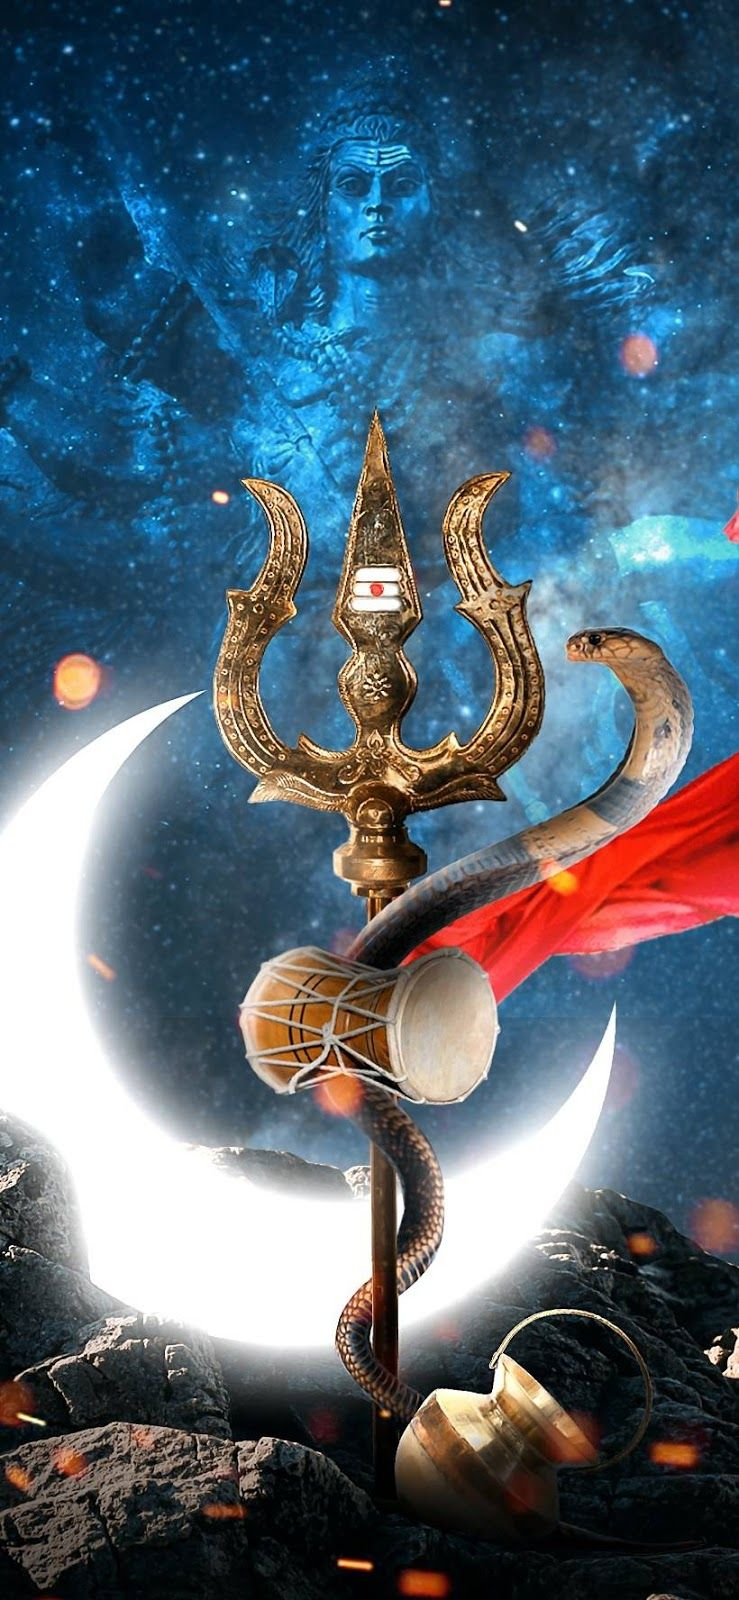 Most Unique And Ultra Hd Shiva Wallpapers Hindu God Mahadev Full Hd Wallpaper For Mobile Scree Lord Hanuman Wallpapers Lord Shiva Hd Wallpaper Shiva Wallpaper Full screen angry 1080p lord shiva hd